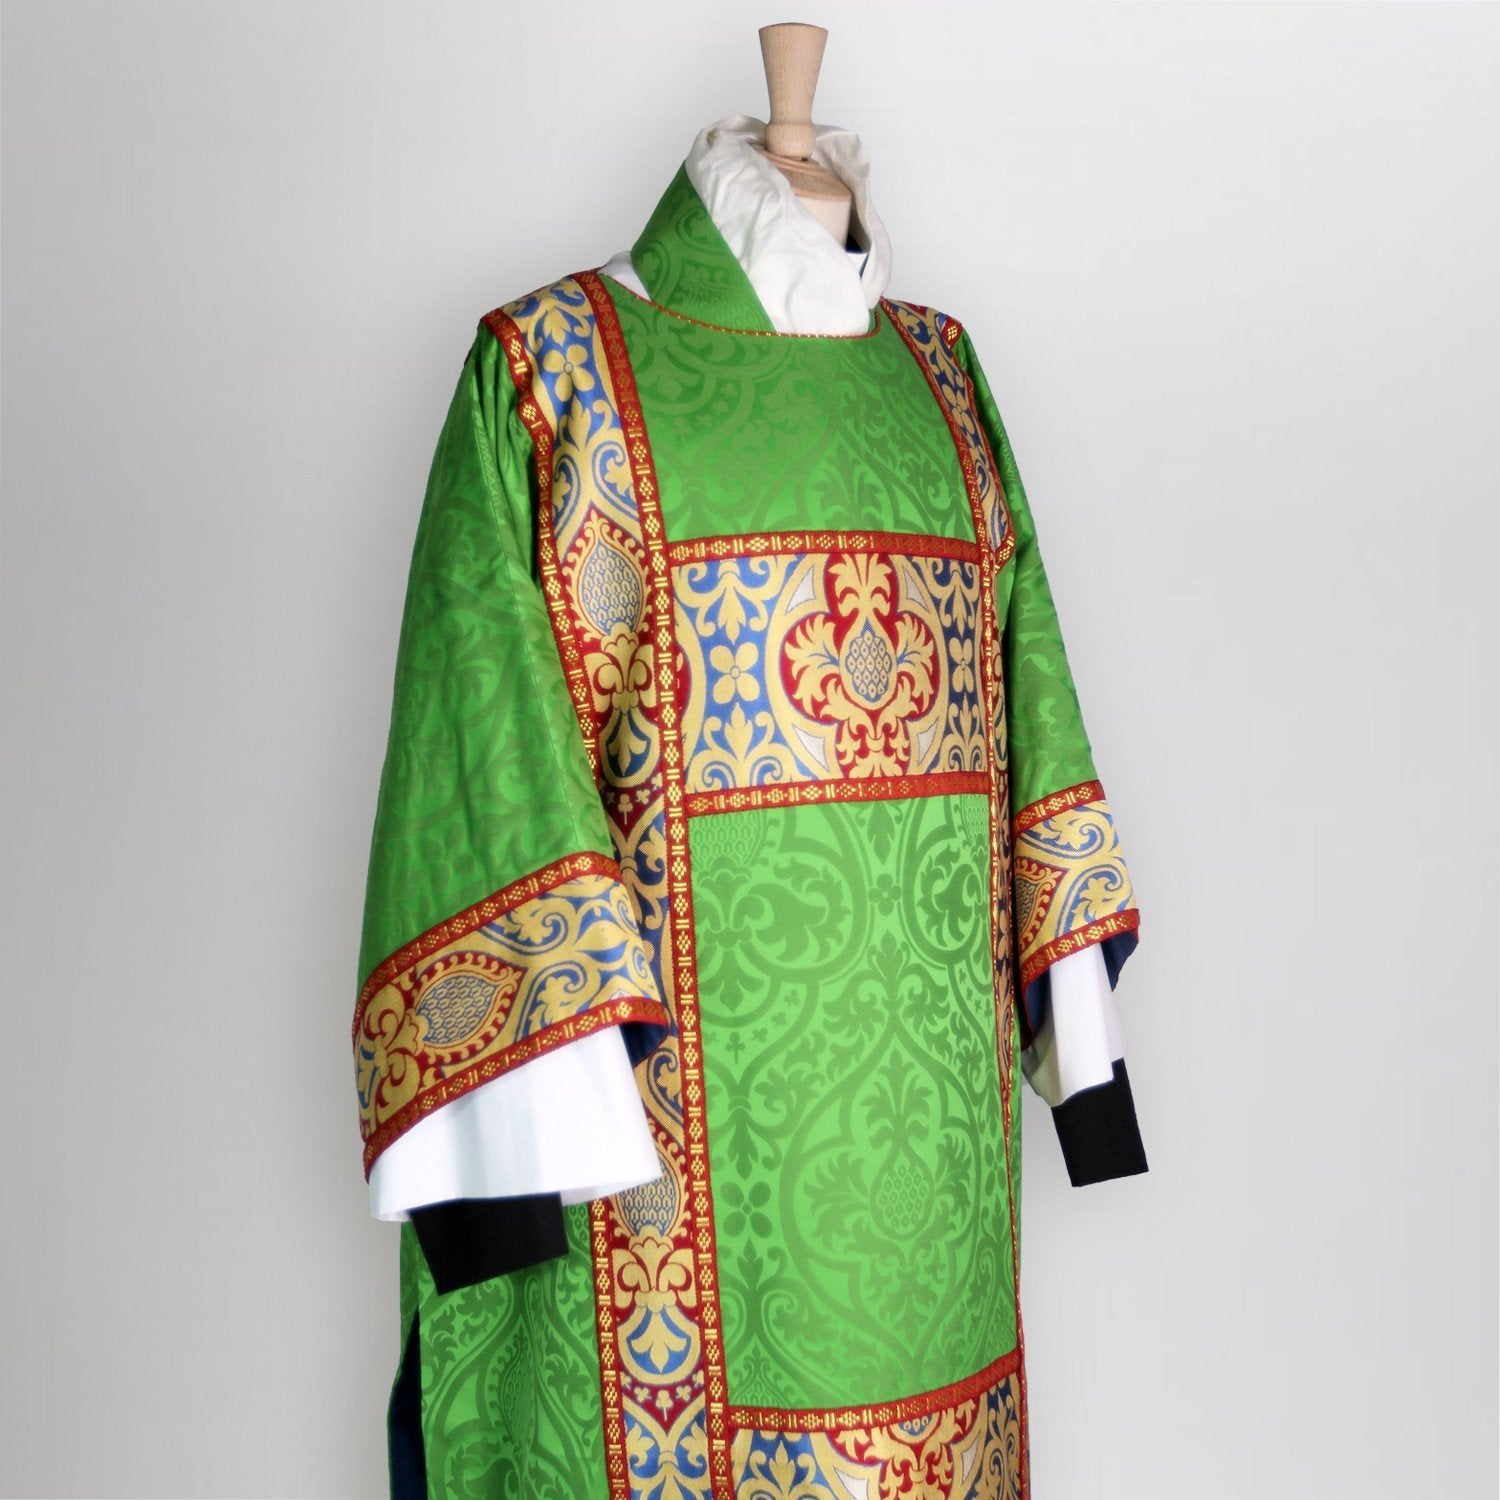 Full Gothic Dalmatic in Green Alton with Blue Talbot Orphreys - Watts & Co. (international)